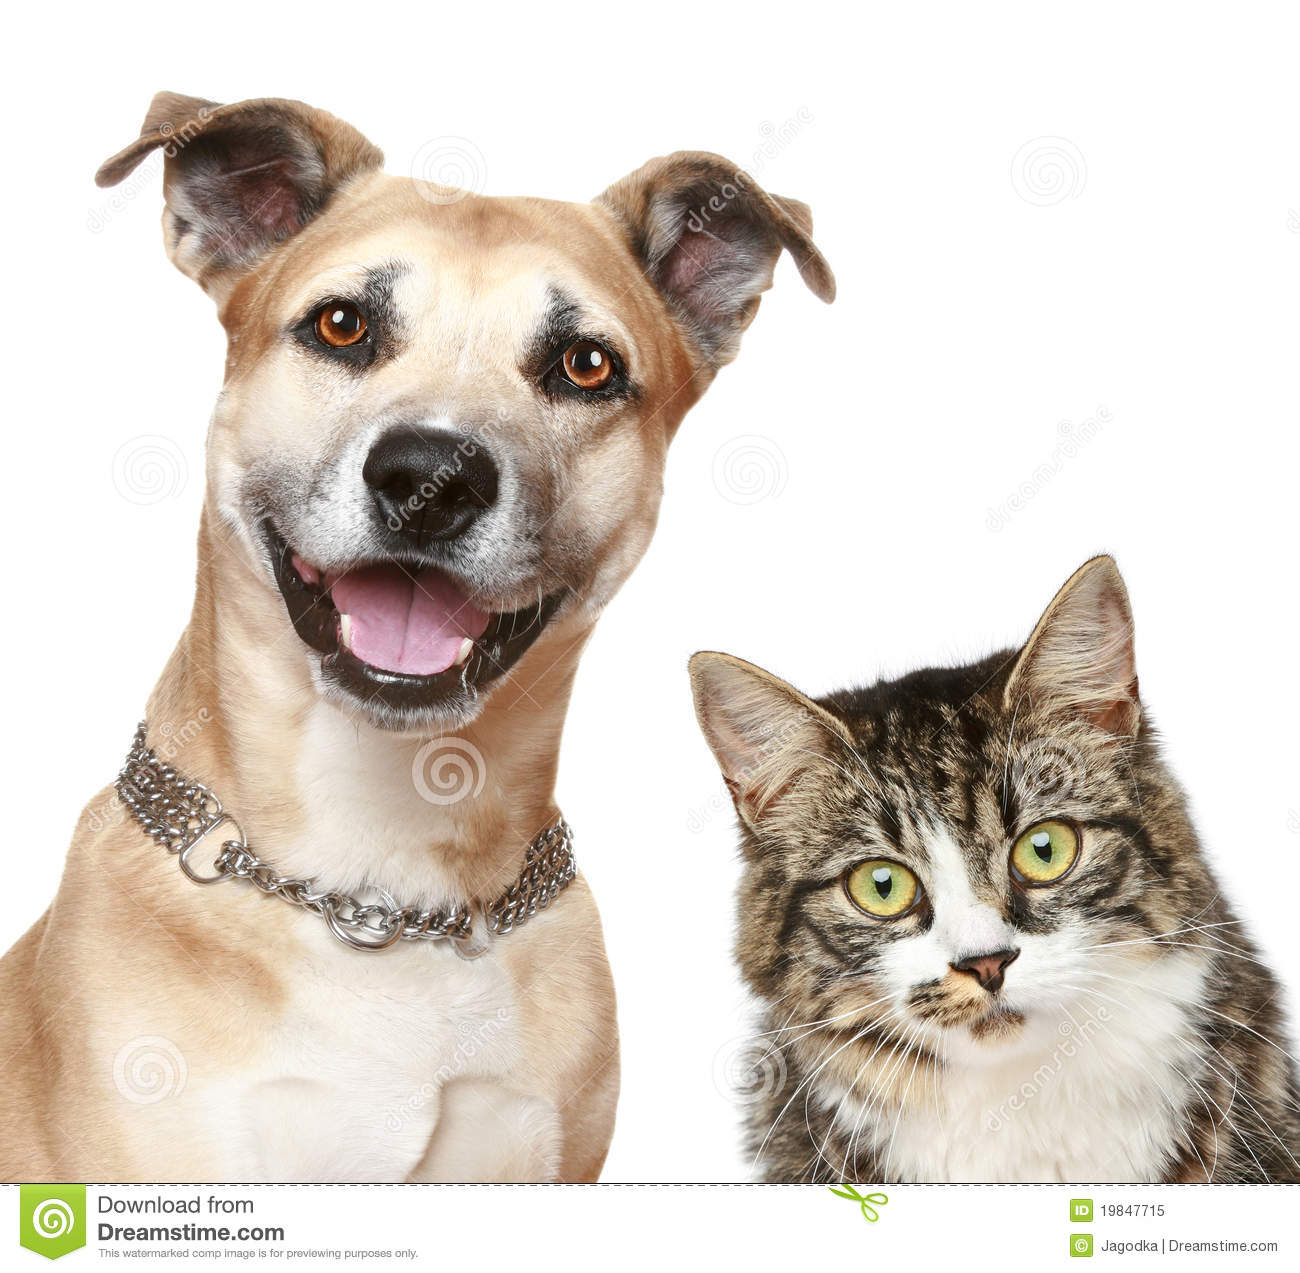 Dog And Cat On A White Background Stock Image Image Of Attentive Guardian 19847715